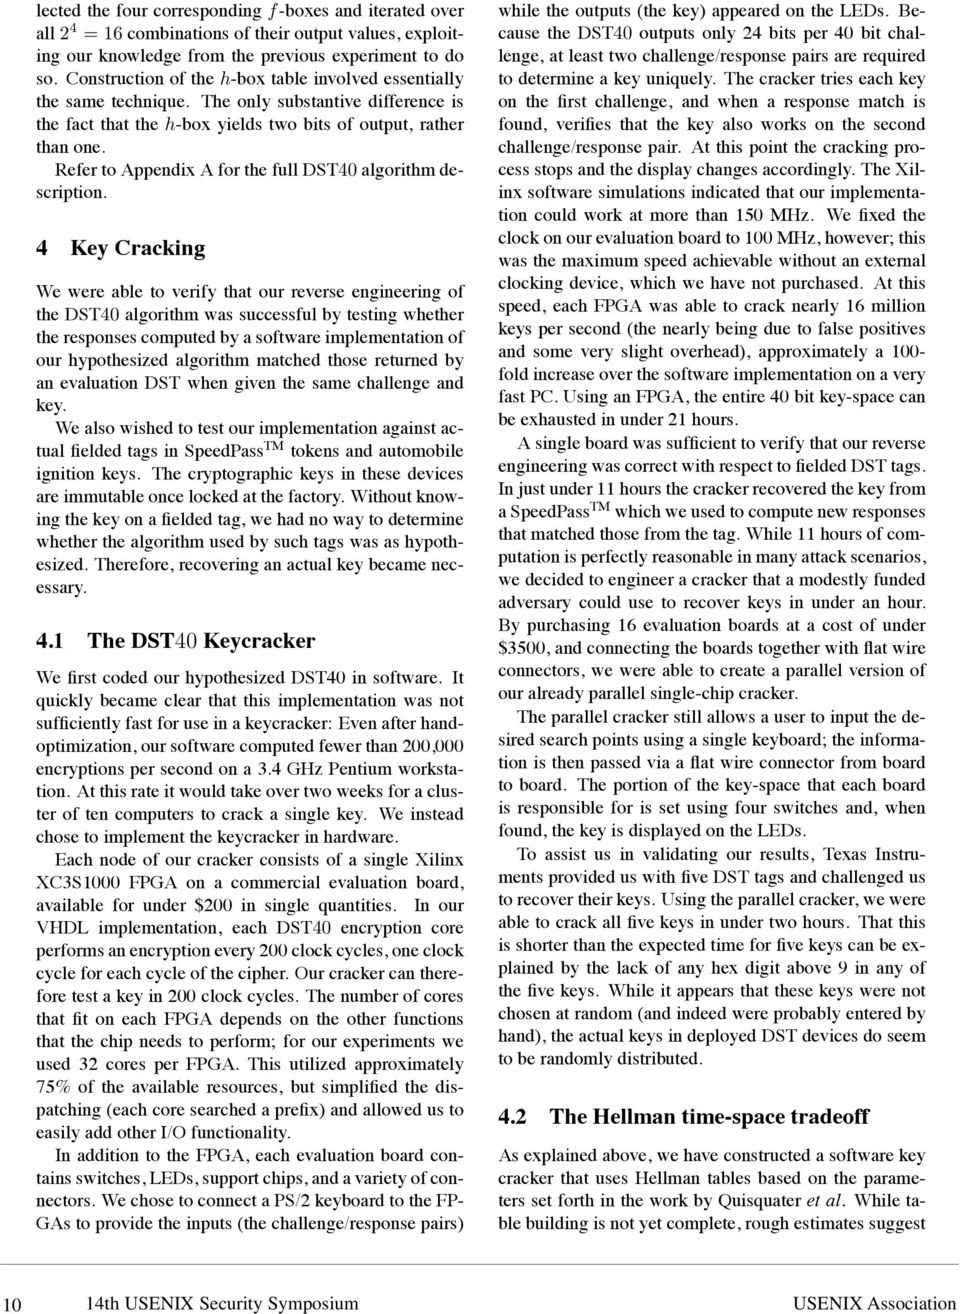 Refer to Appendix A for the full DST40 algorithm description.